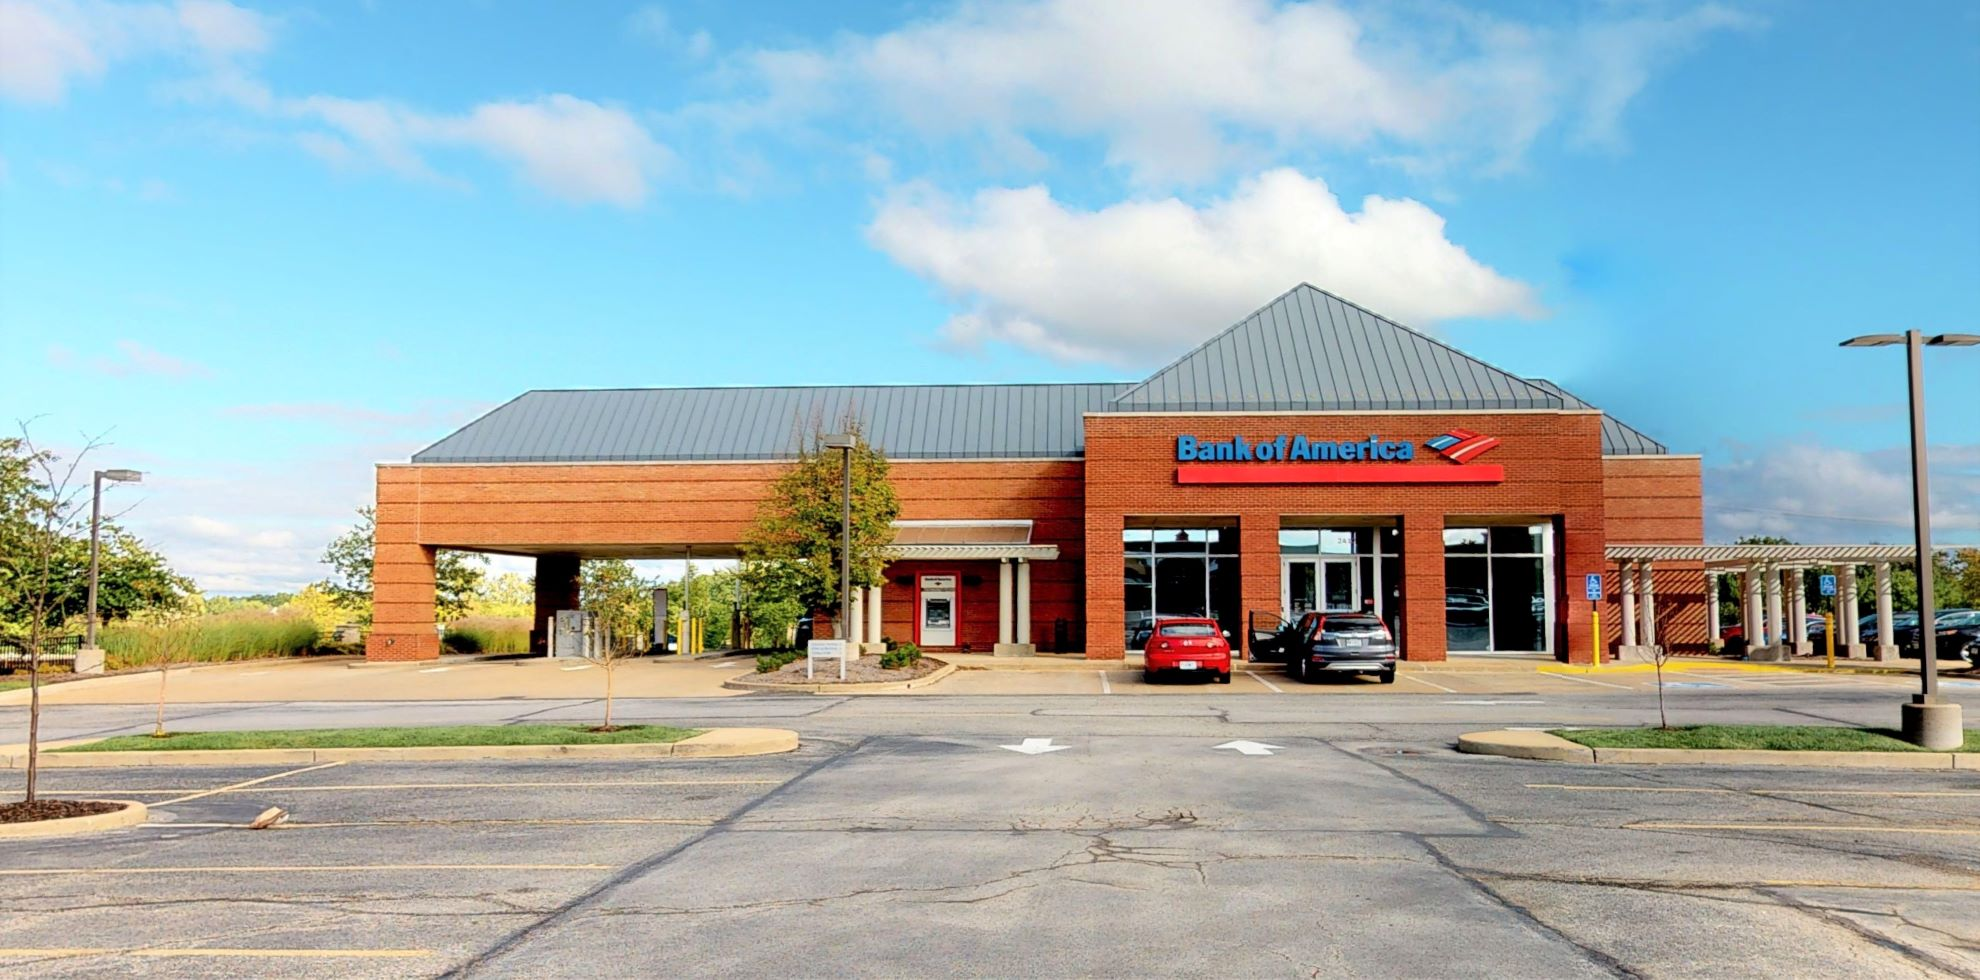 Bank of America financial center with drive-thru ATM   2412 Taylor Rd, Wildwood, MO 63040